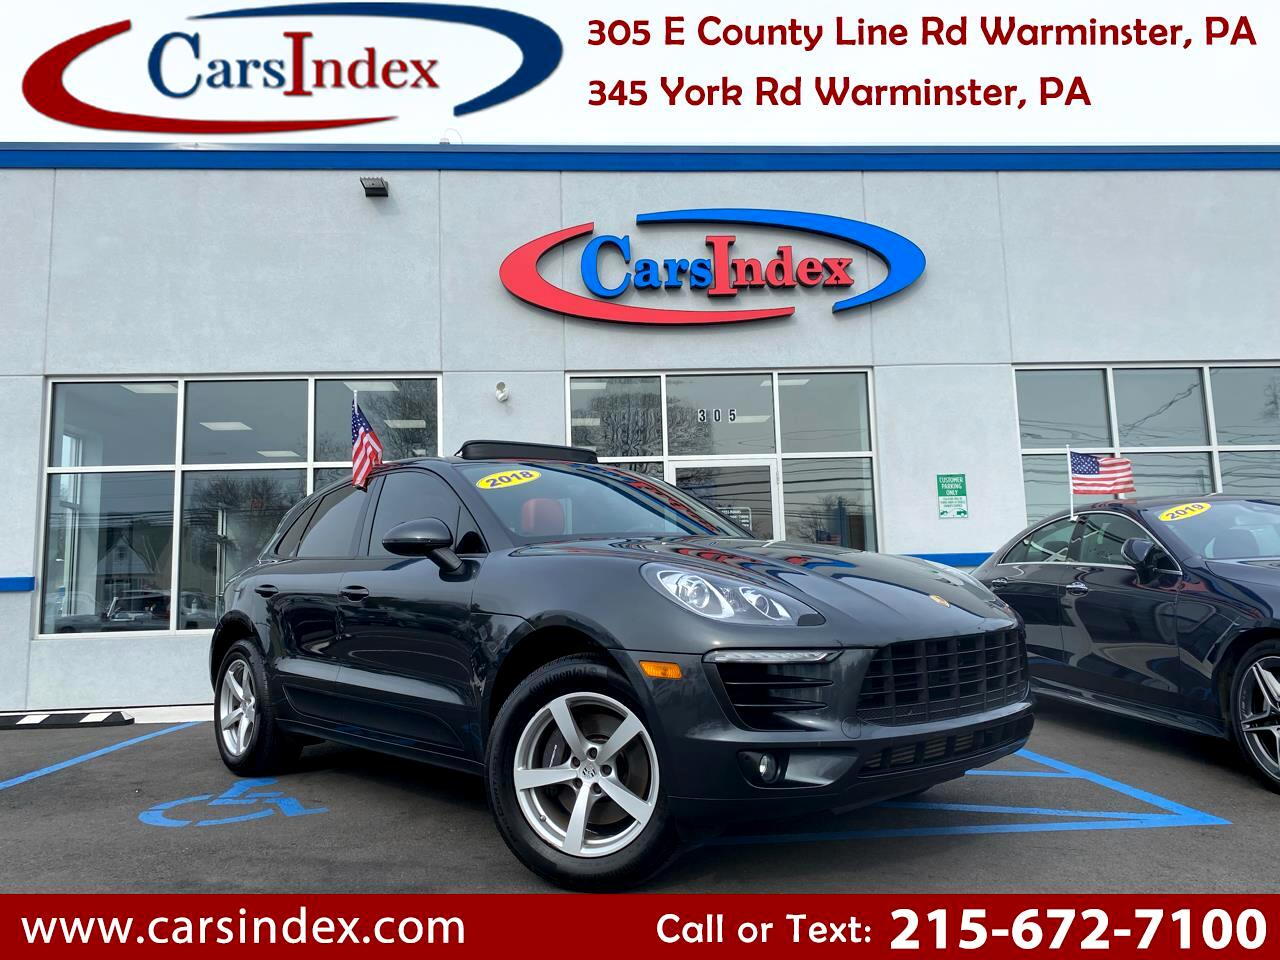 Used Porsche Macan Warminster Pa